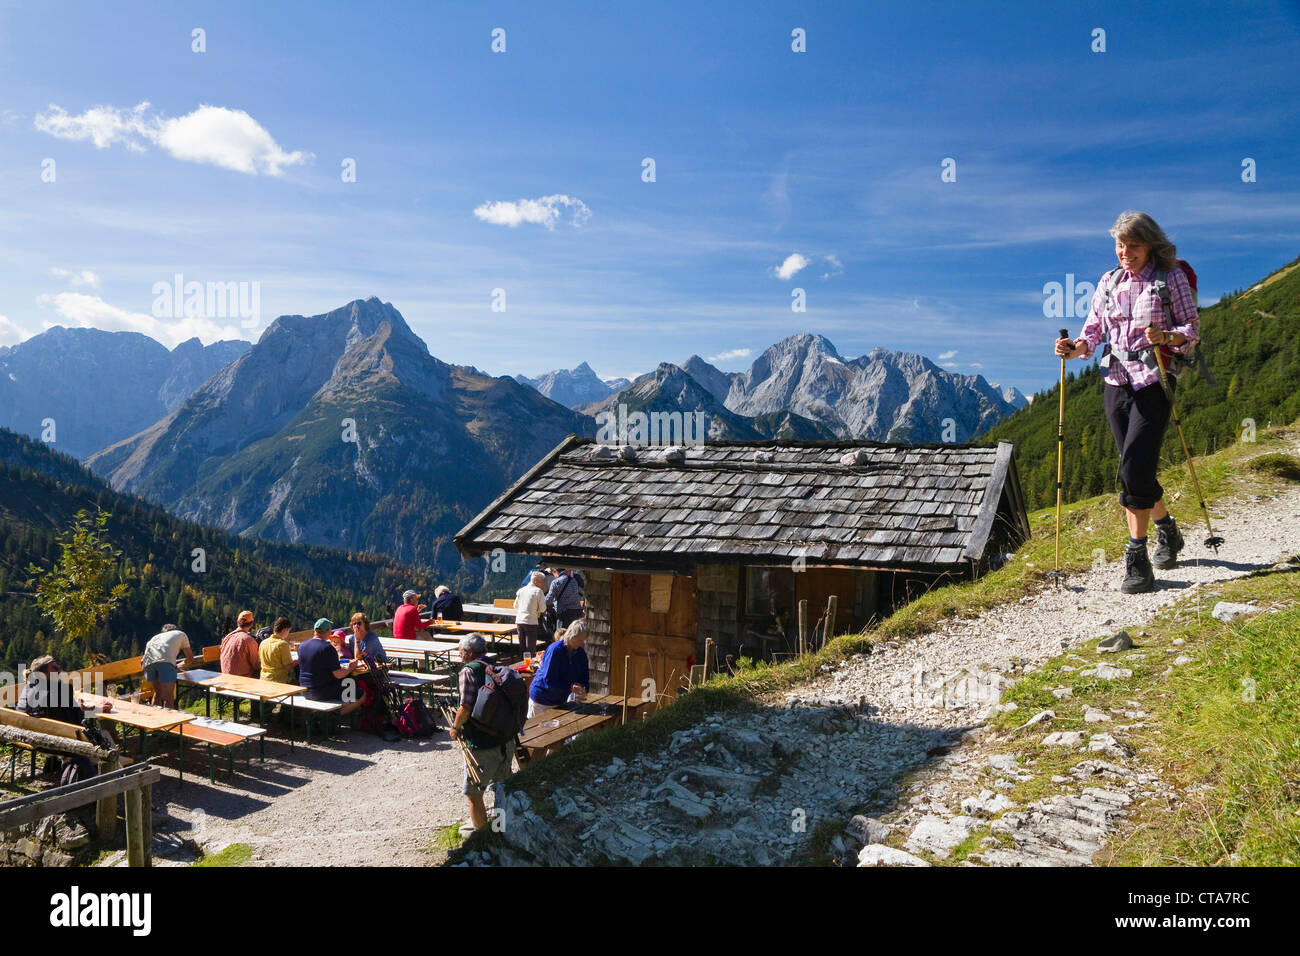 People at the terrace of mountain hut, Plumsjoch hut, Karwendel mountains, Tyrol, Austria, Europe - Stock Image